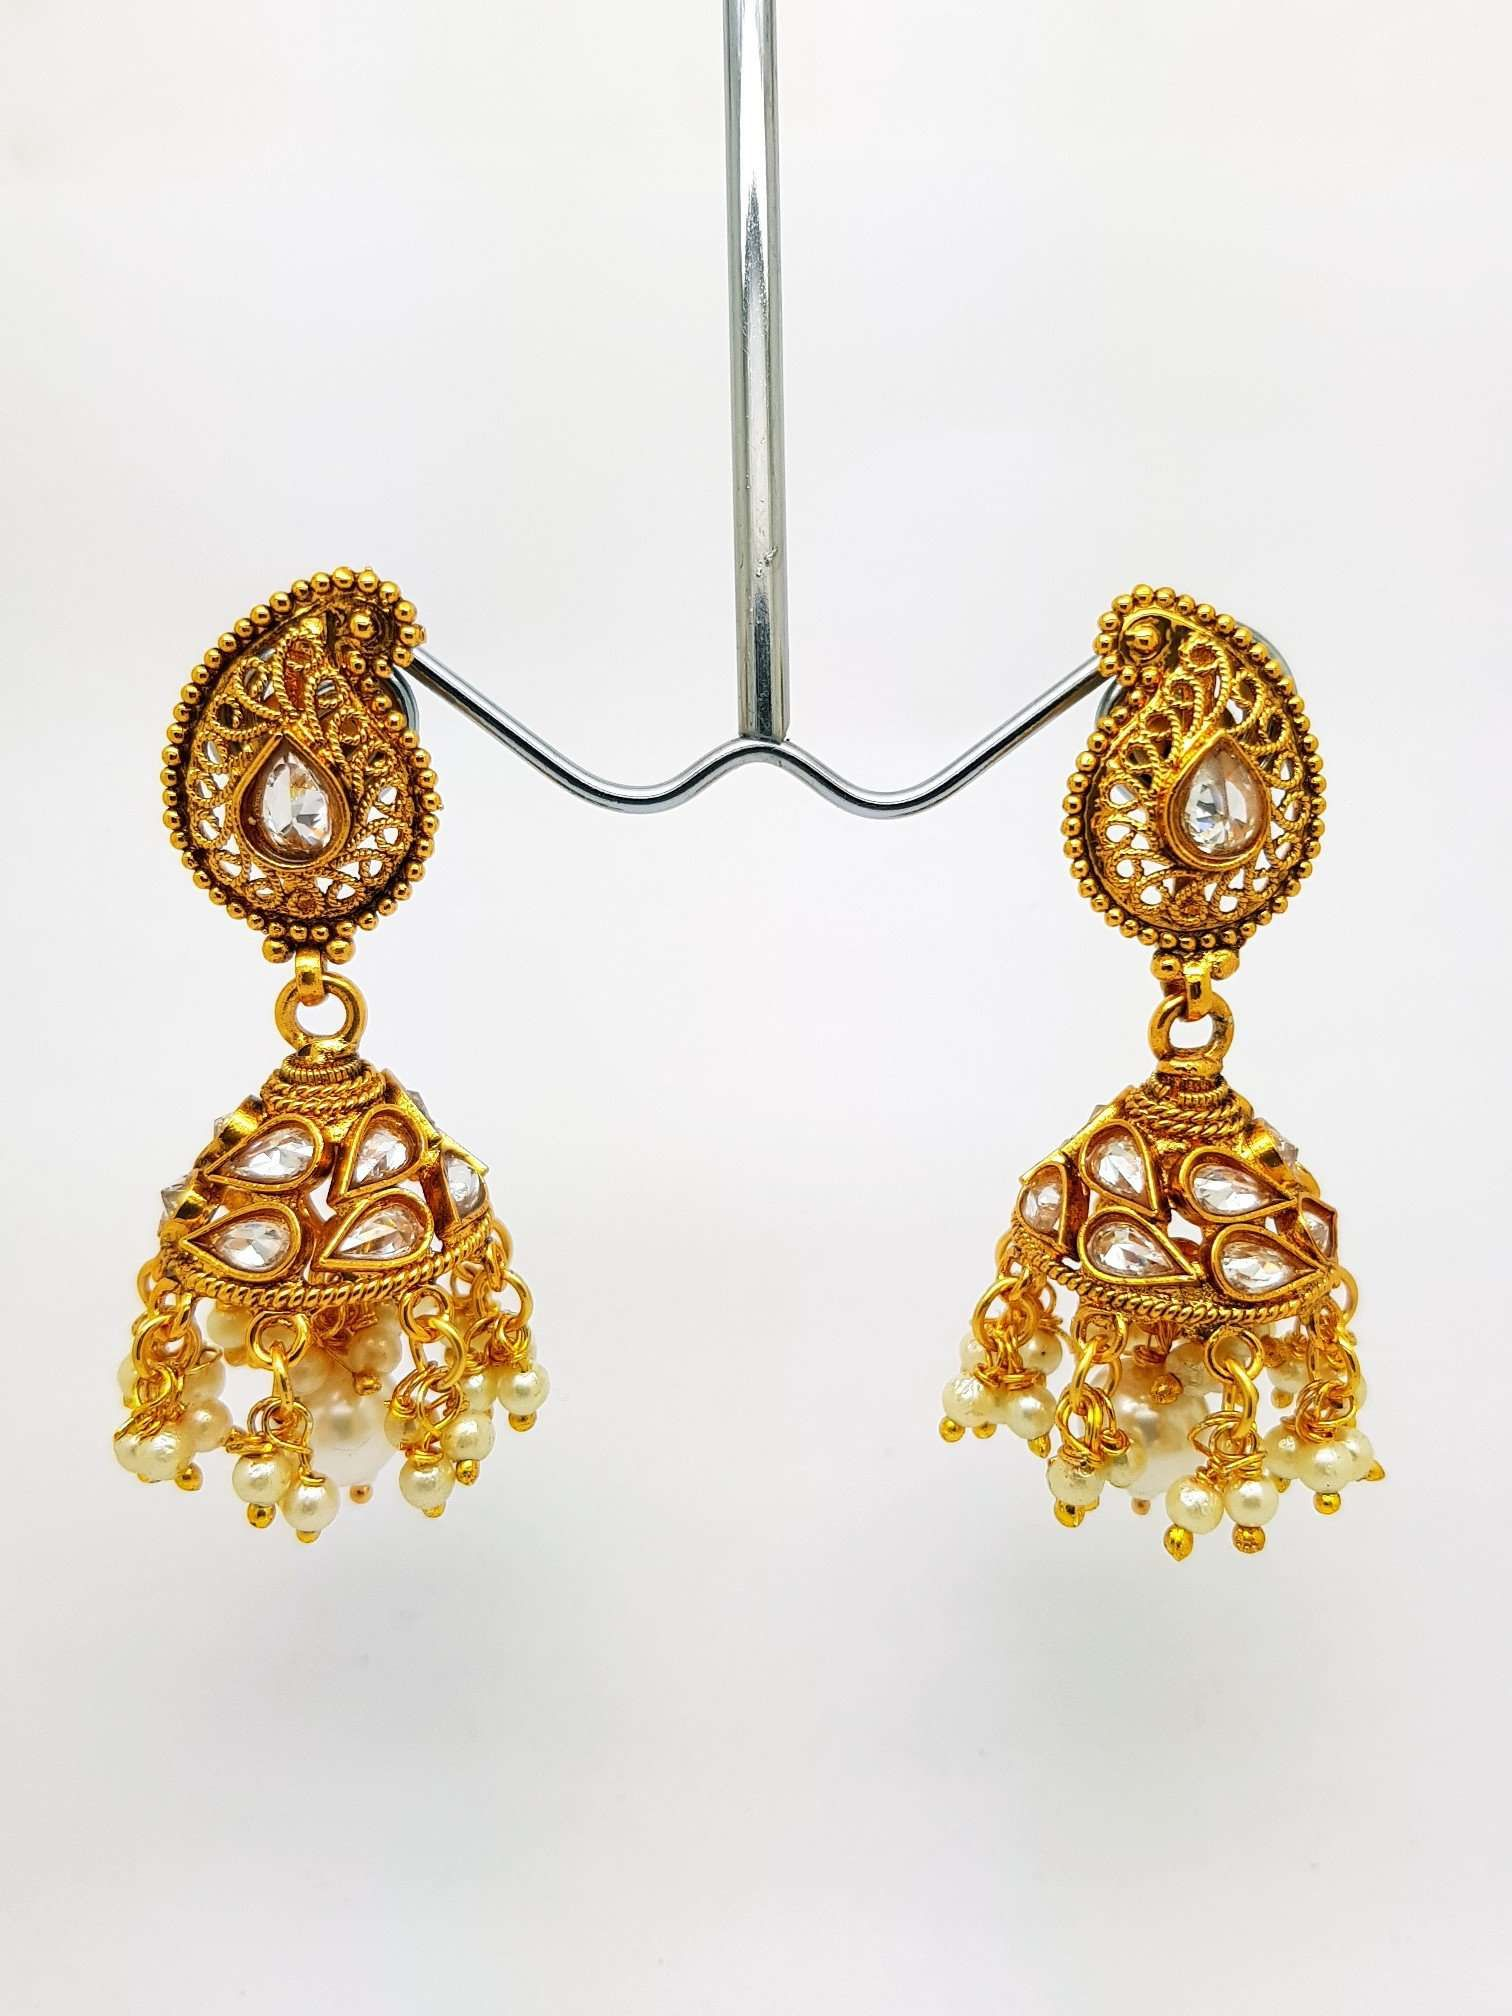 Find this amazing Reverse Stone Medium Jhumki Earrings - Bollywood - Fancy Dress - KAJ578TP 0918 online or at our shop in Tooting, London. This Reverse Stone Medium Jhumki Earrings - Bollywood - Fancy Dress - KAJ578TP 0918 is sure to win your heart. At only £14.00, this item is an absolute steal! Buy now at Prachy Creations!  Ideal for all occasions such as weddings and Bollywood parties. We source these earrings from a very reputable wholesaler in Mumbai. They have been trading in Indian fashio